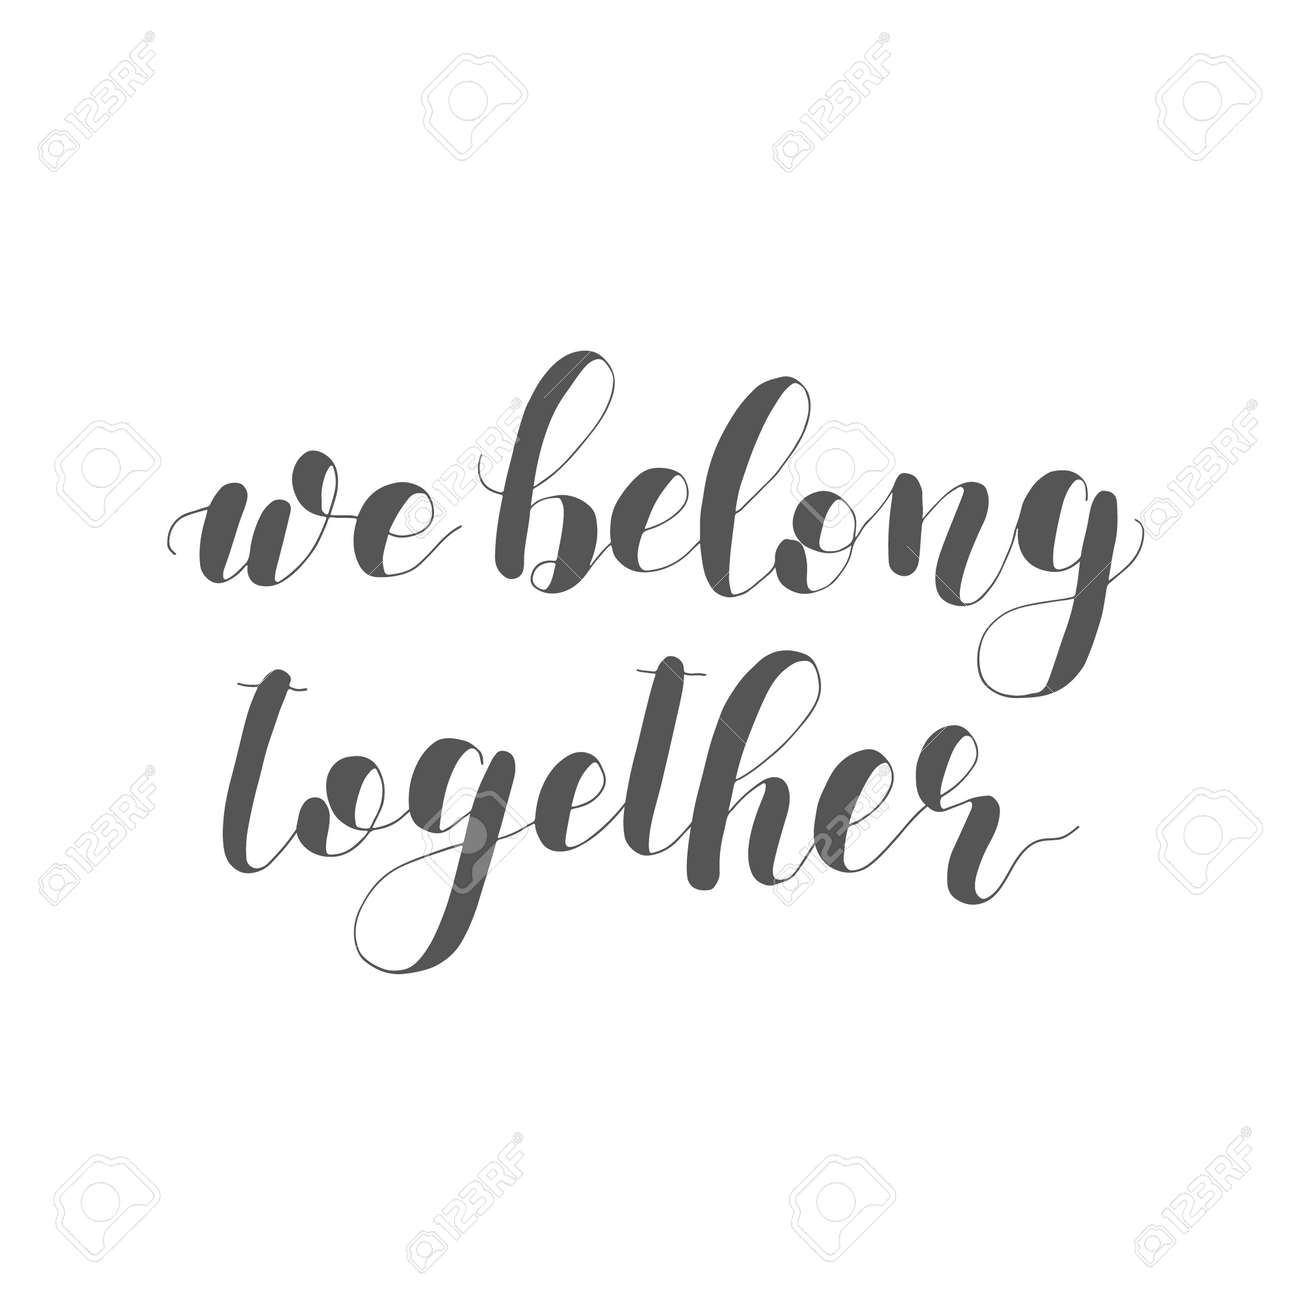 a5a36c2e6 We belong together. Lettering illustration. Inspiring quote. Motivating  modern calligraphy. Great for